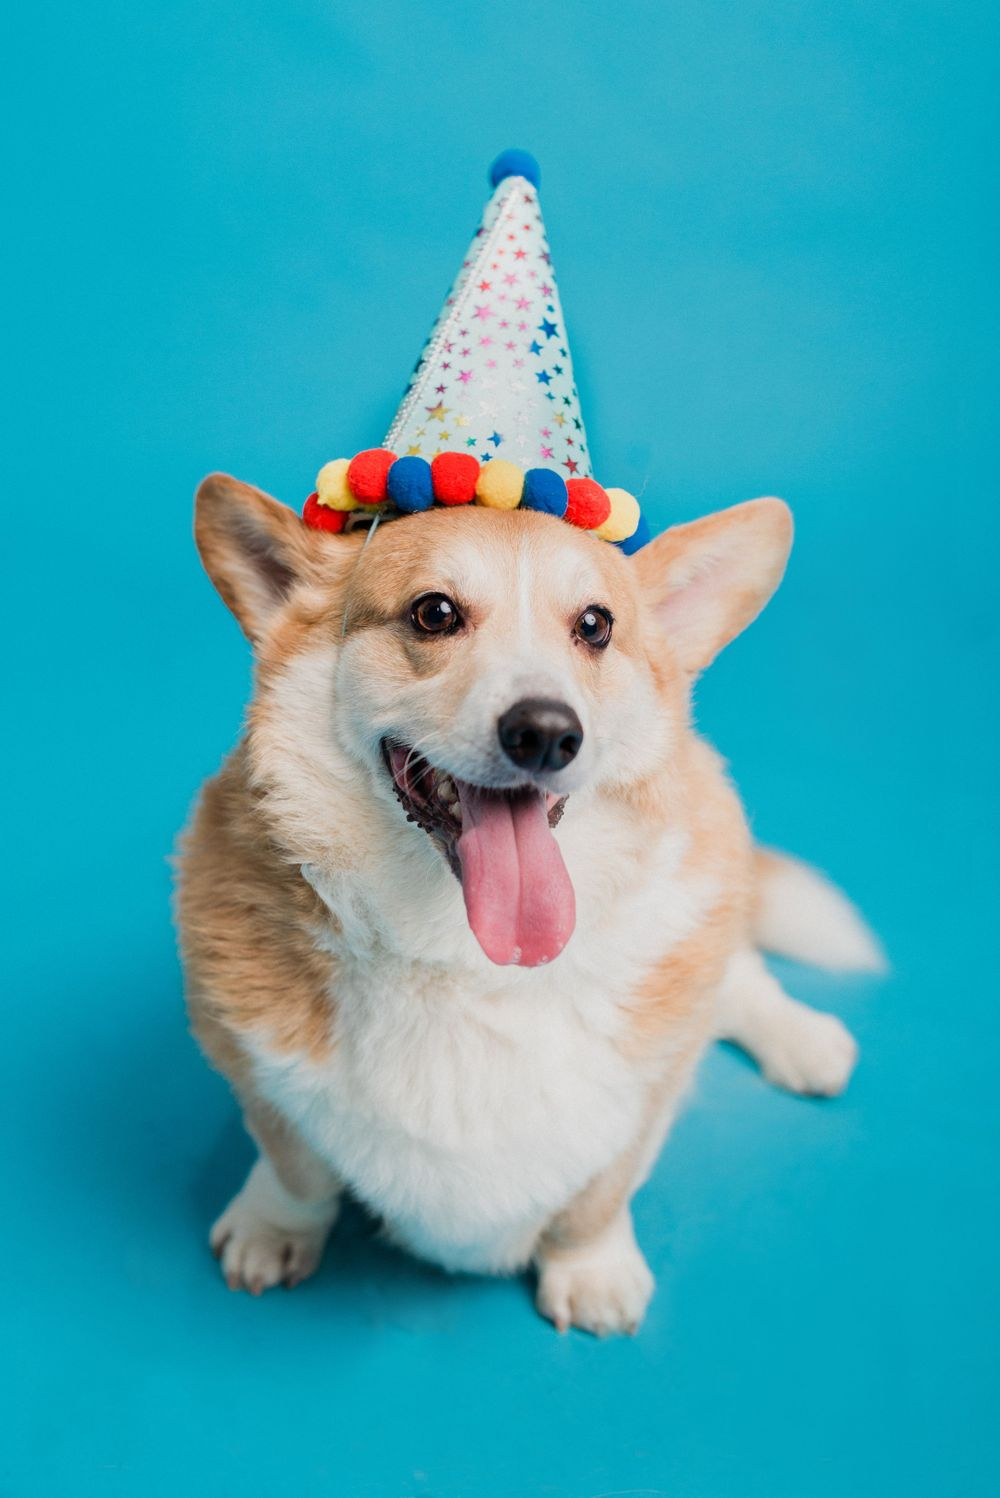 Corgi wearing a birthday hat